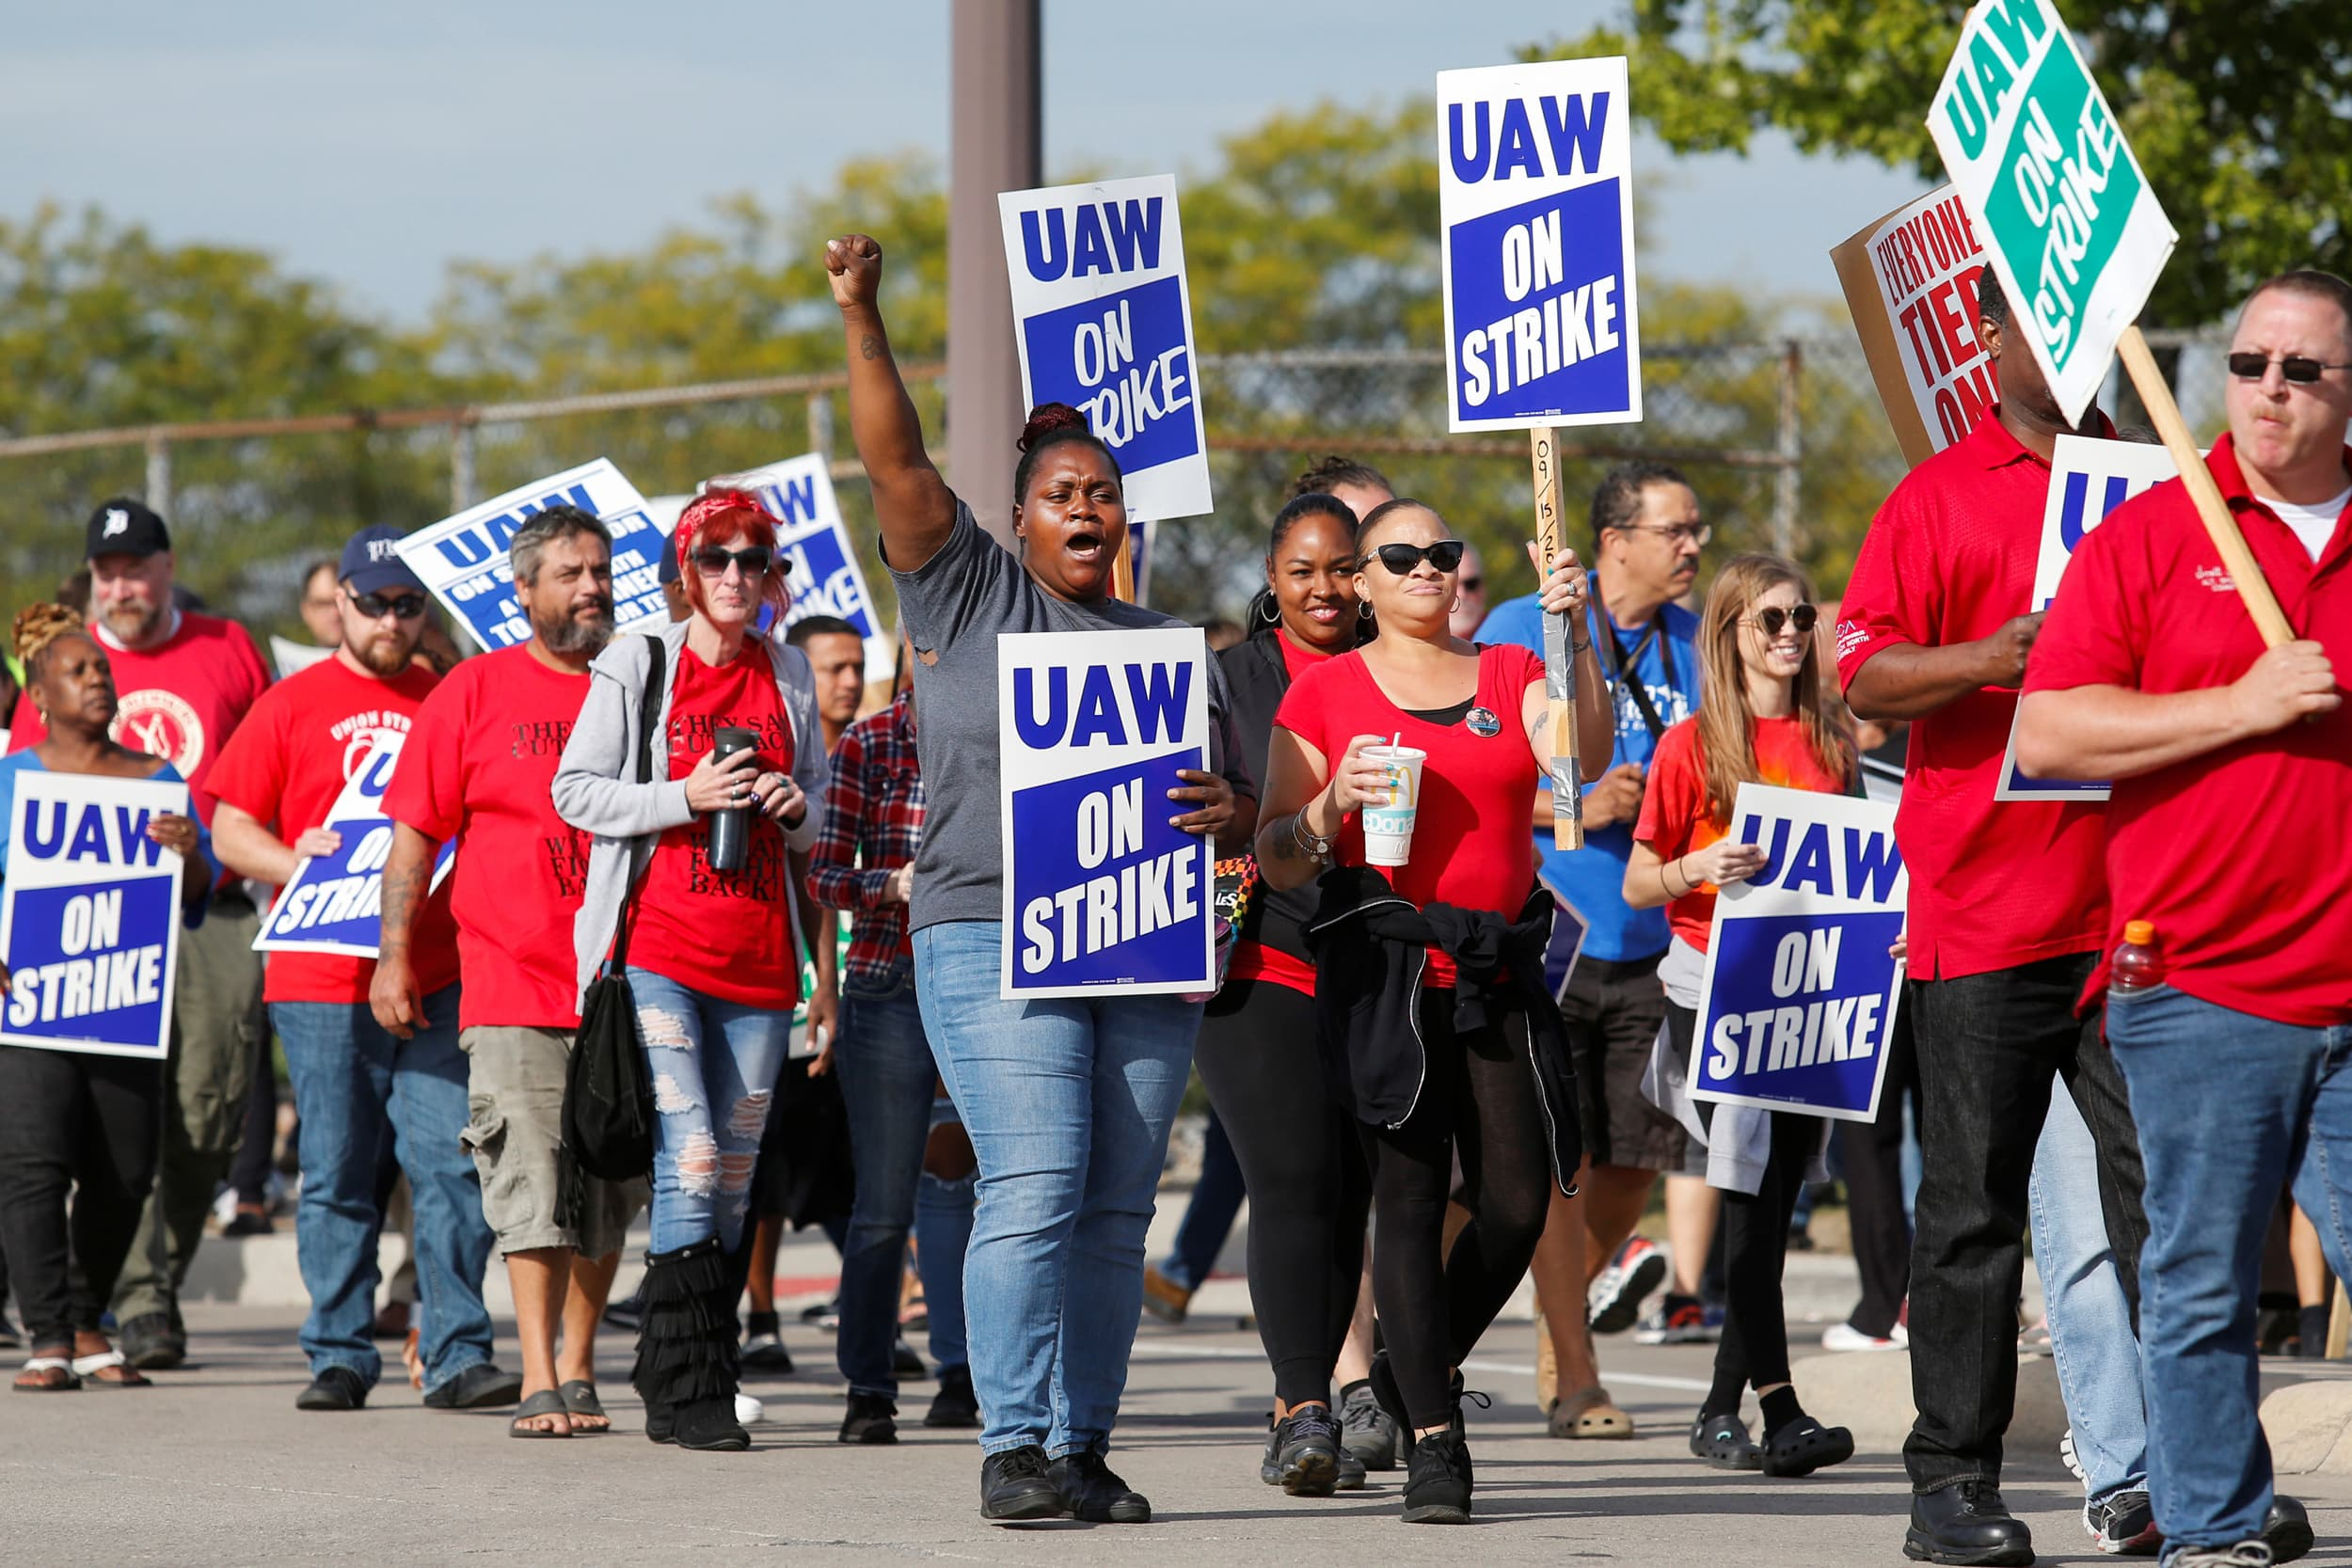 UAW says GM labor talks 'have taken a turn for the worse'